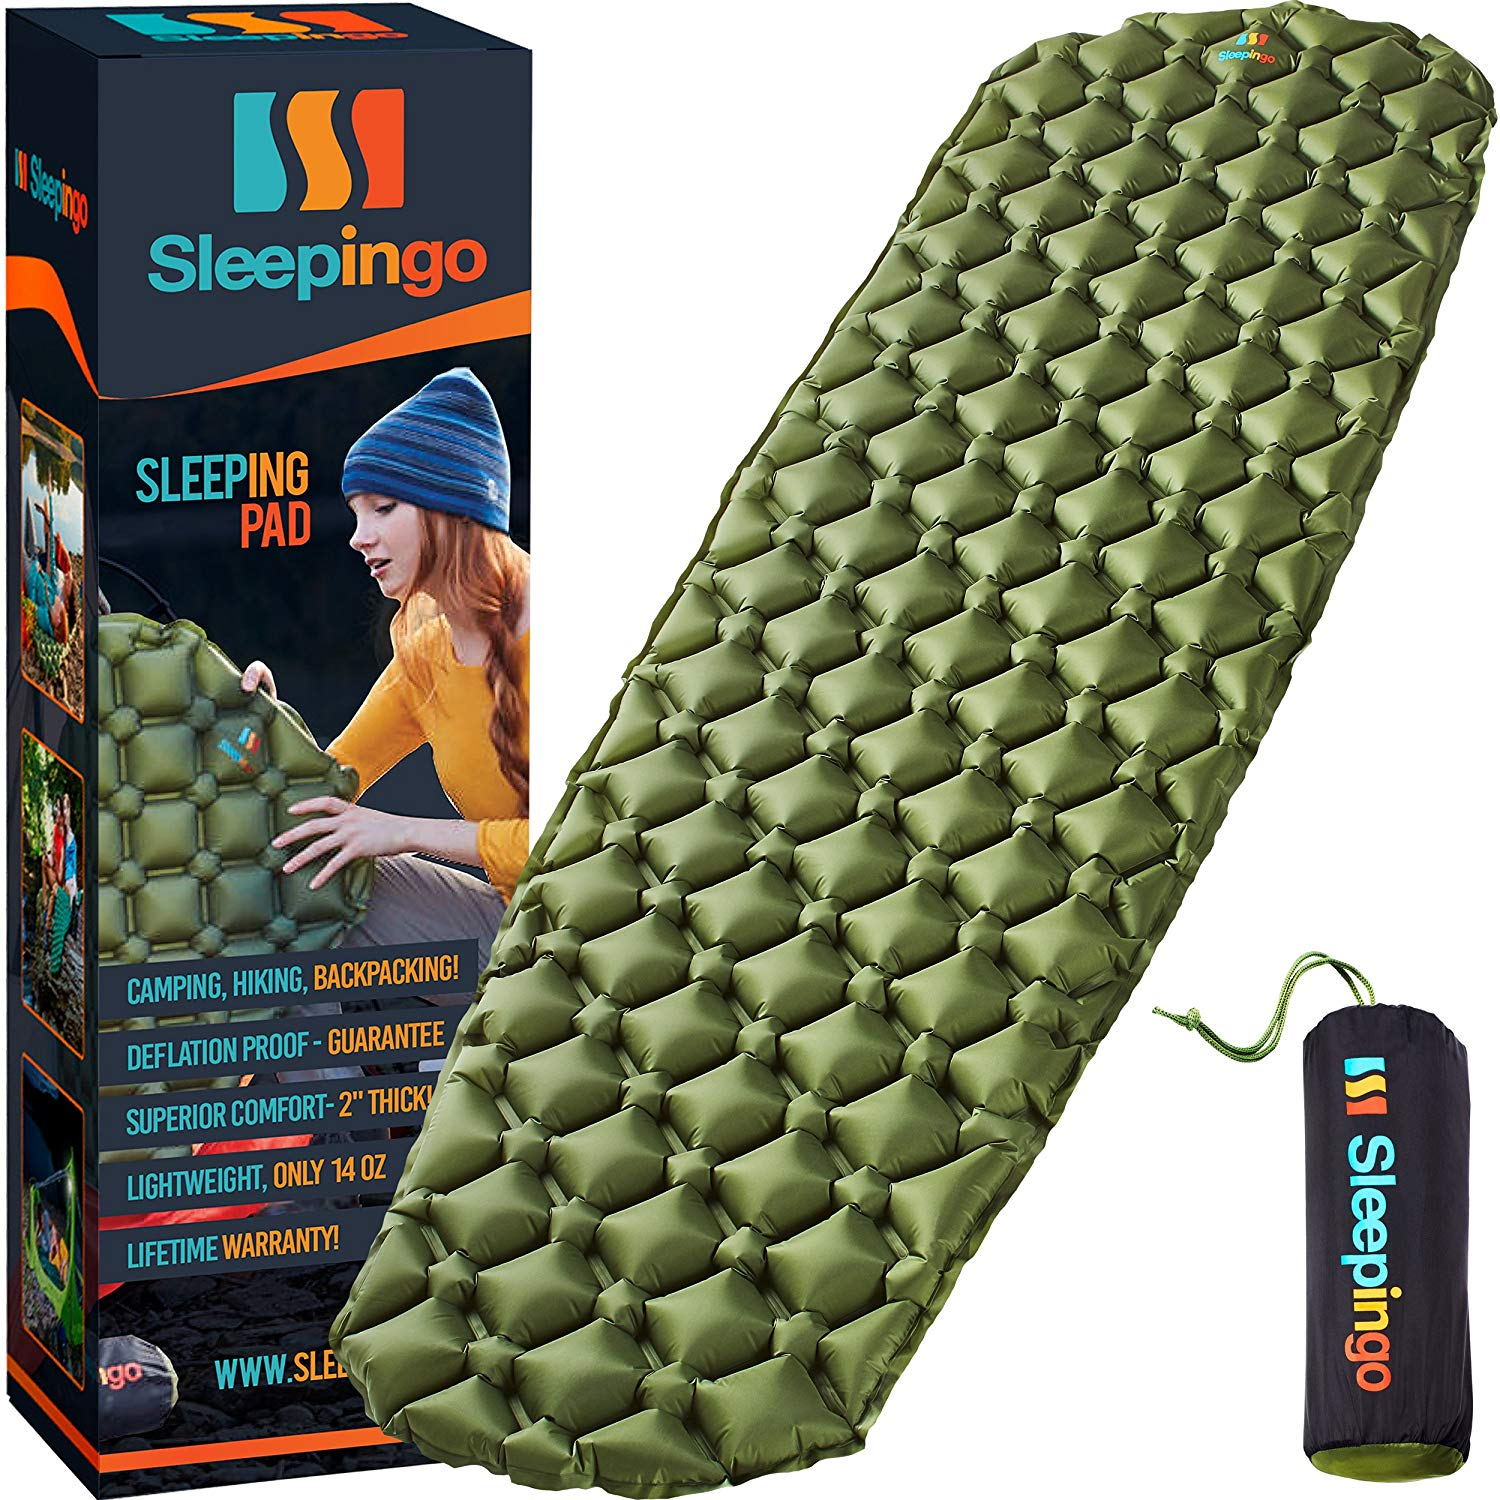 Best Sleeping Pads For Hiking: Great Value For Your Money